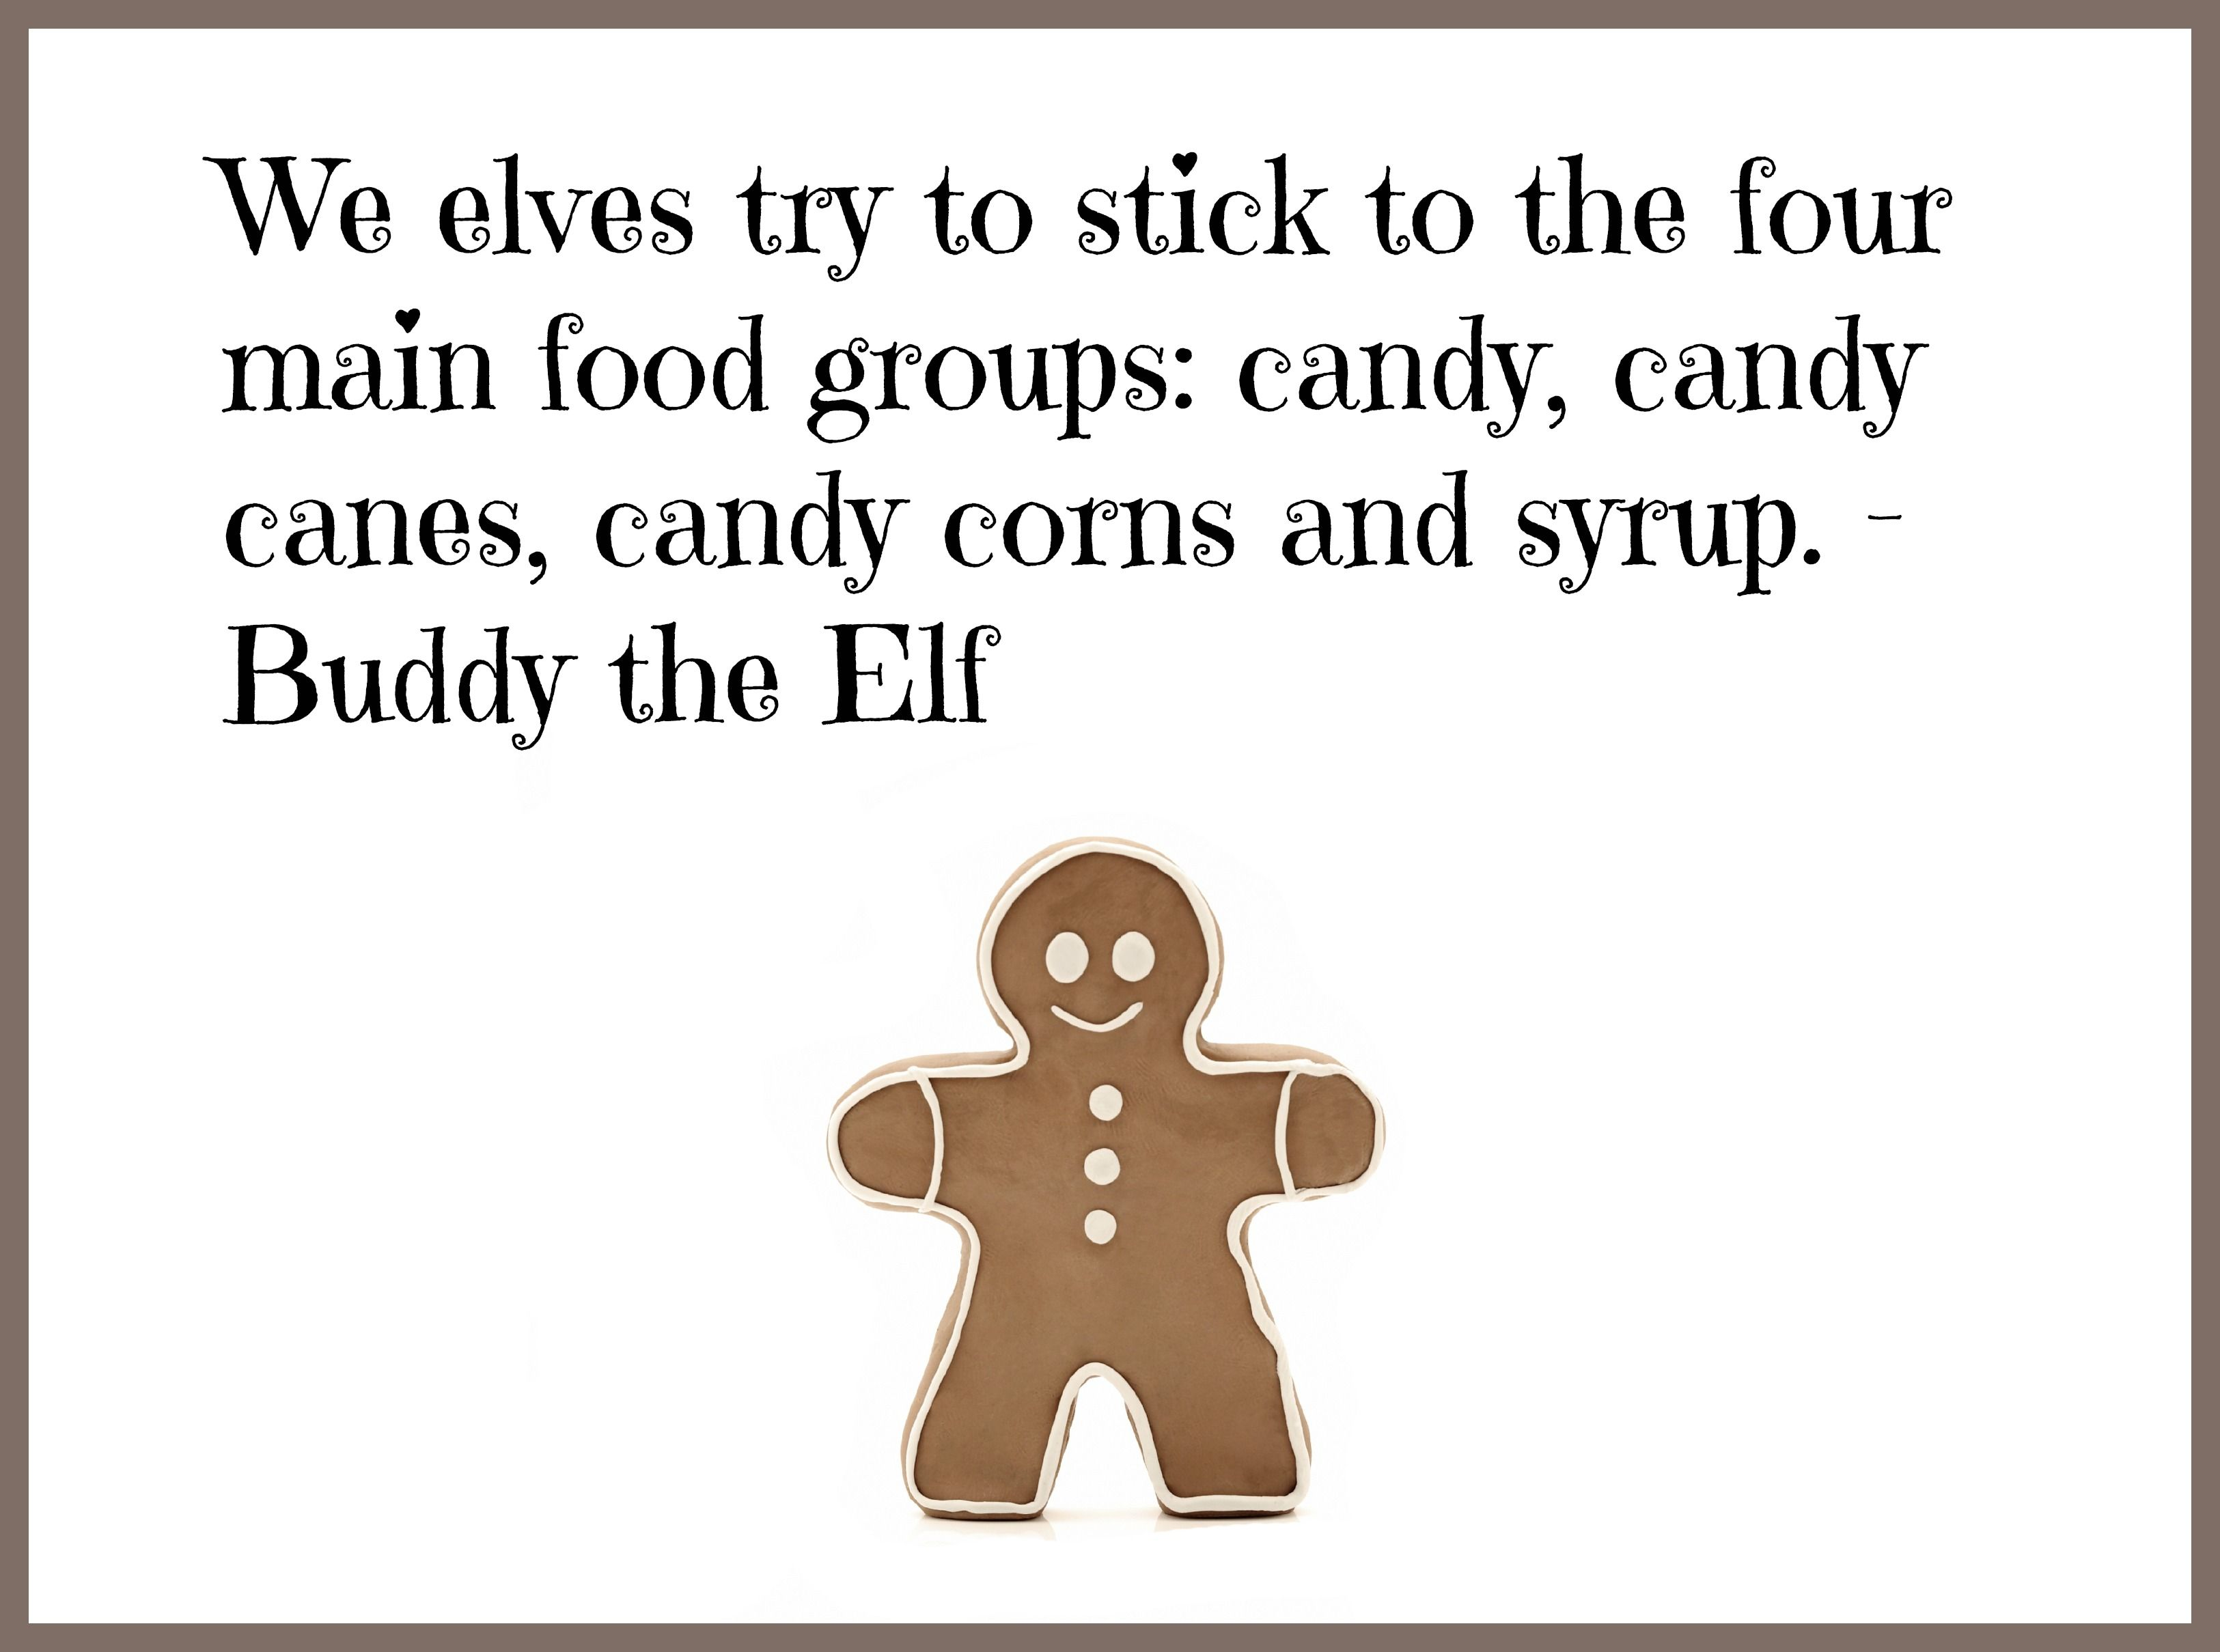 We elves try to stick to the four main food groups: candy, candy canes, candy corns and syrup. -Buddy the Elf